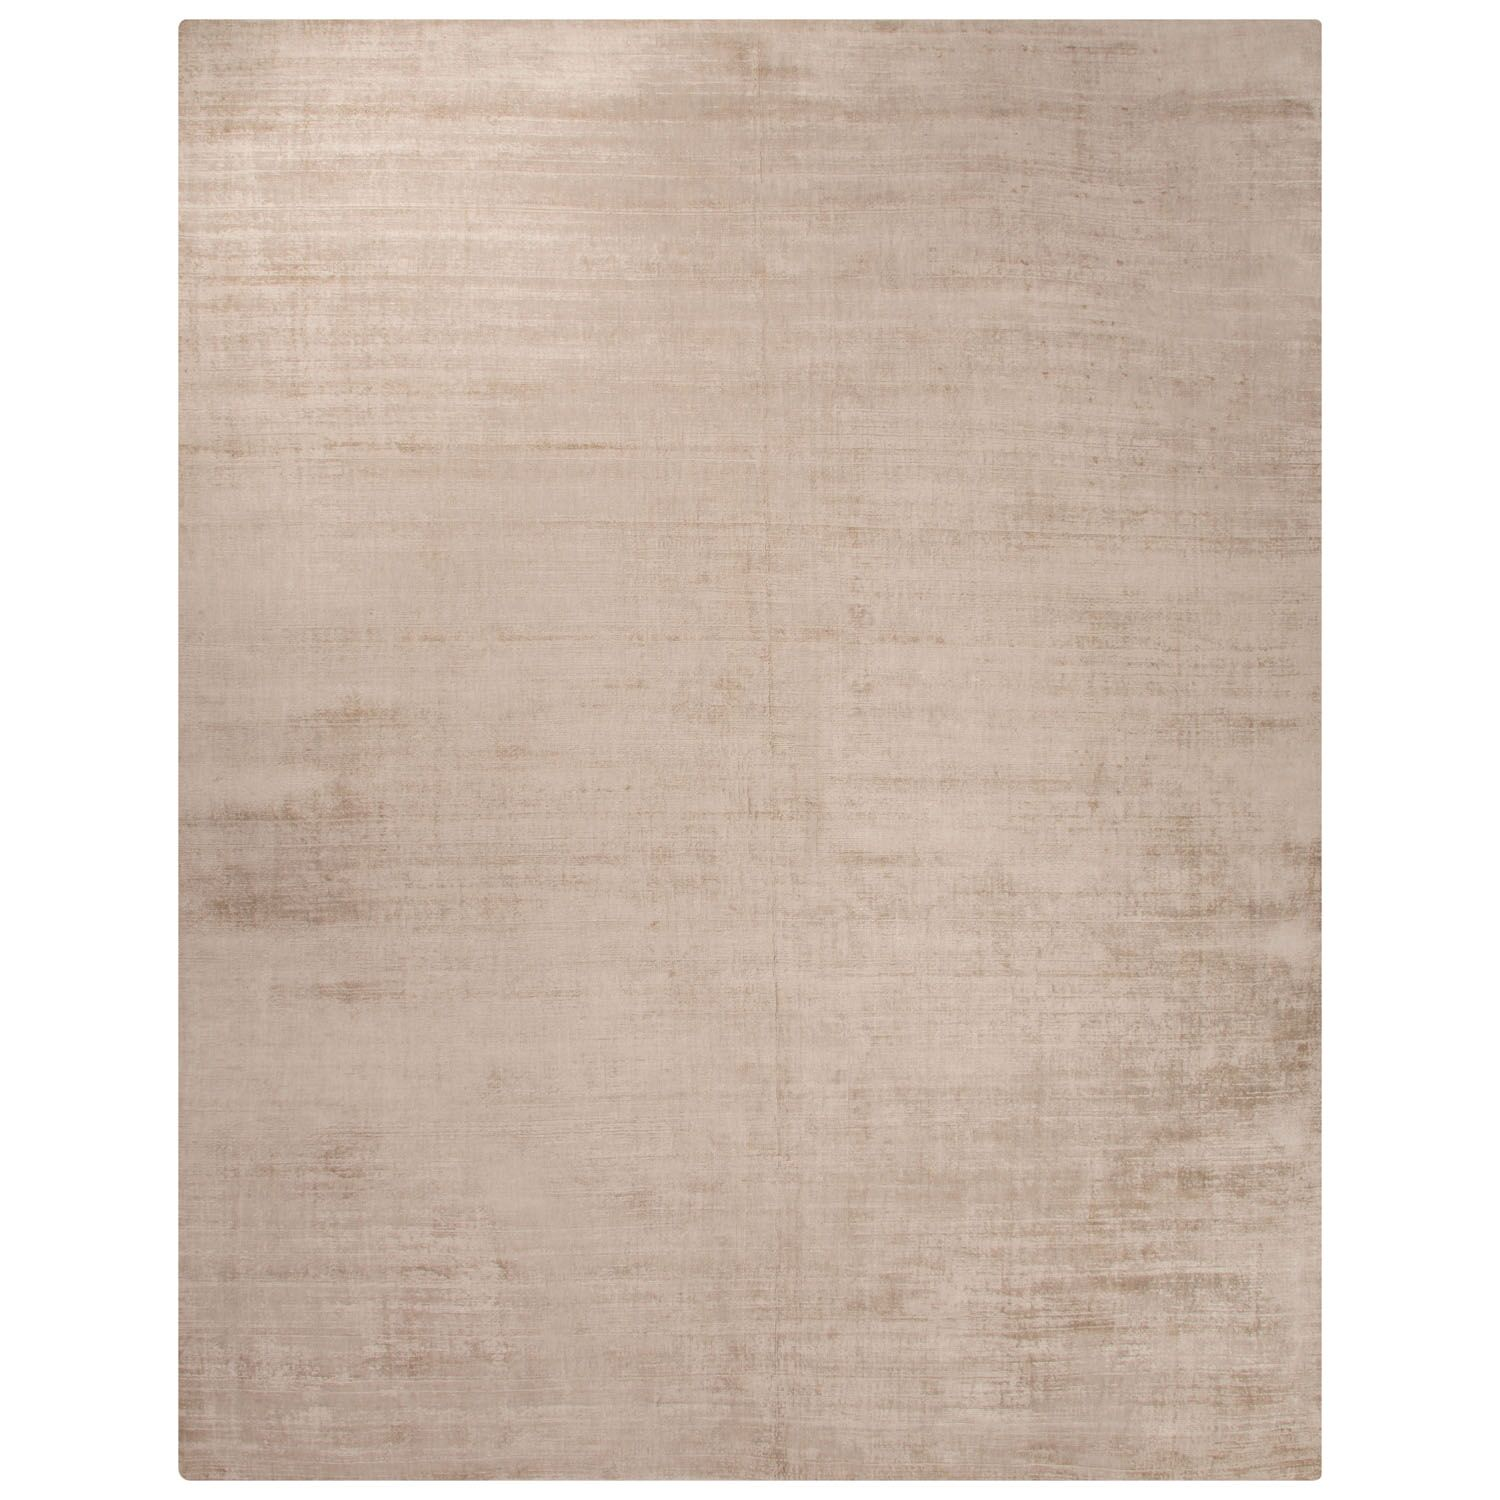 Canarsie Hand-Loomed Beige/Brown Area Rug Rug Size: Rectangle 5' x 8'